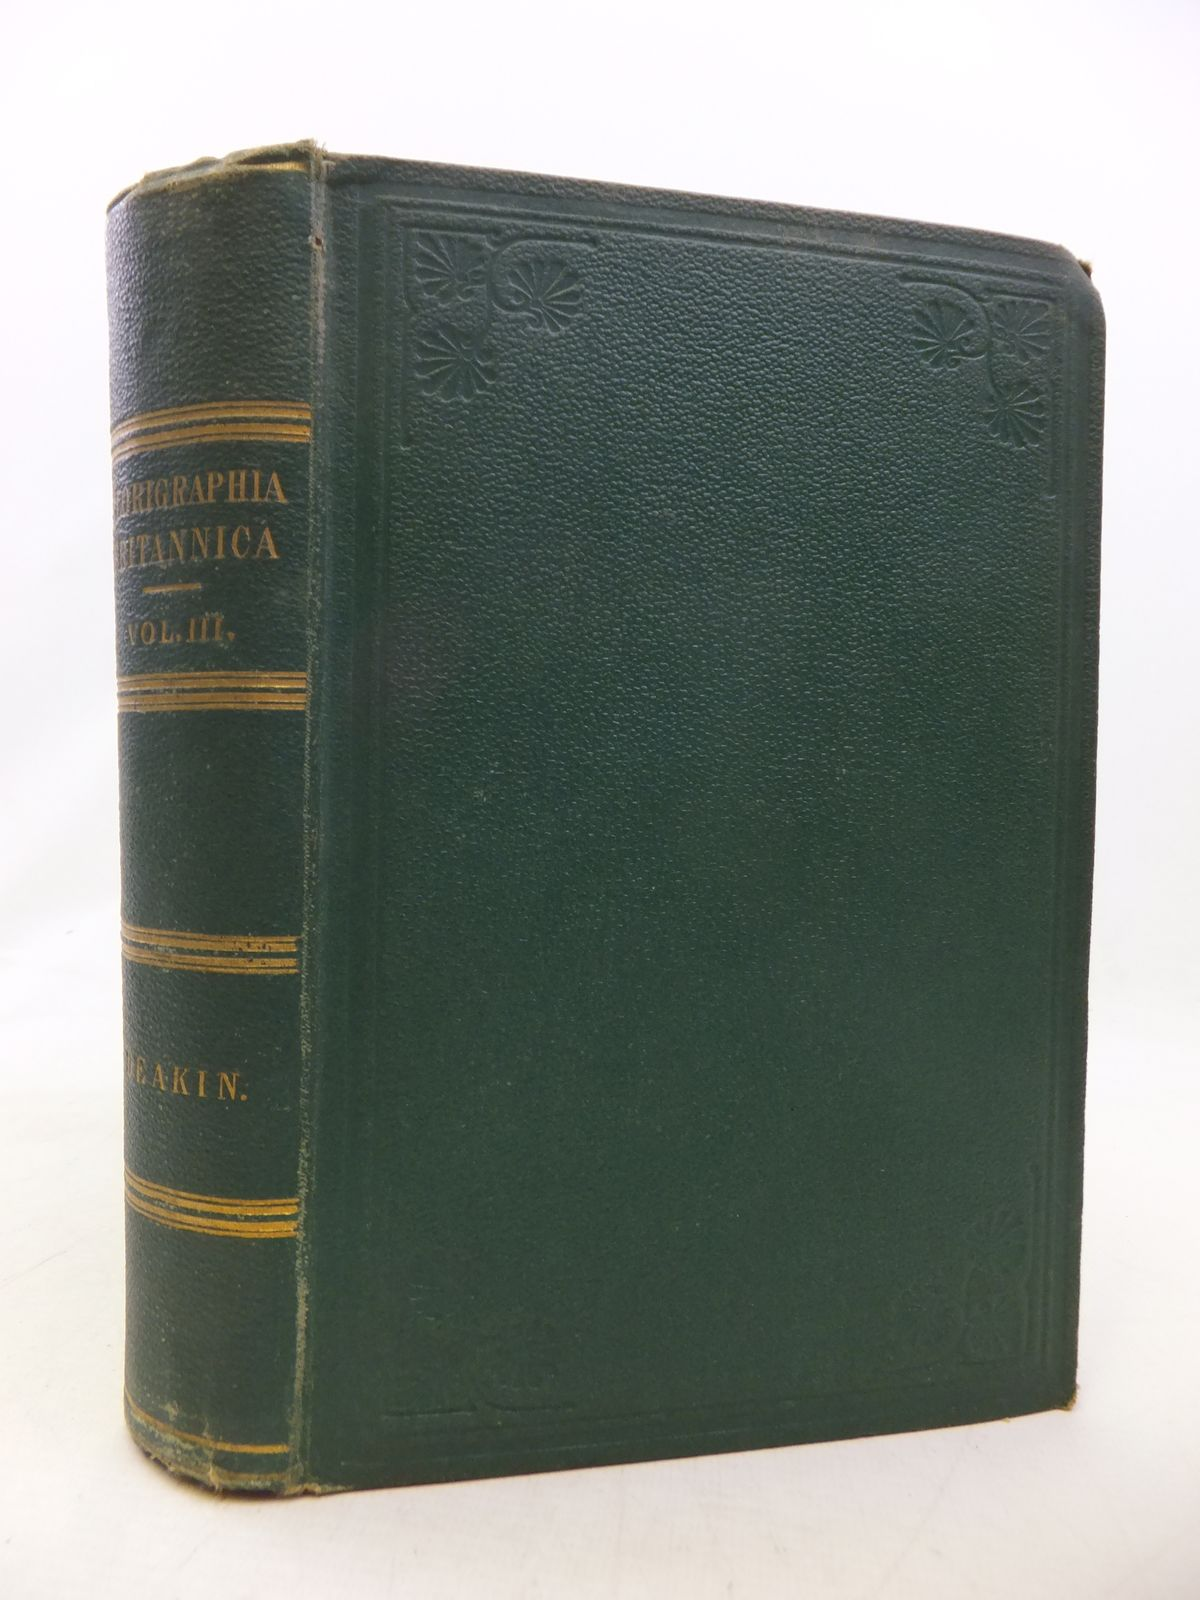 Photo of FLORIGRAPHIA BRITANNICA VOLUME III written by Deakin, Richard published by Groombridge & Sons (STOCK CODE: 1809130)  for sale by Stella & Rose's Books